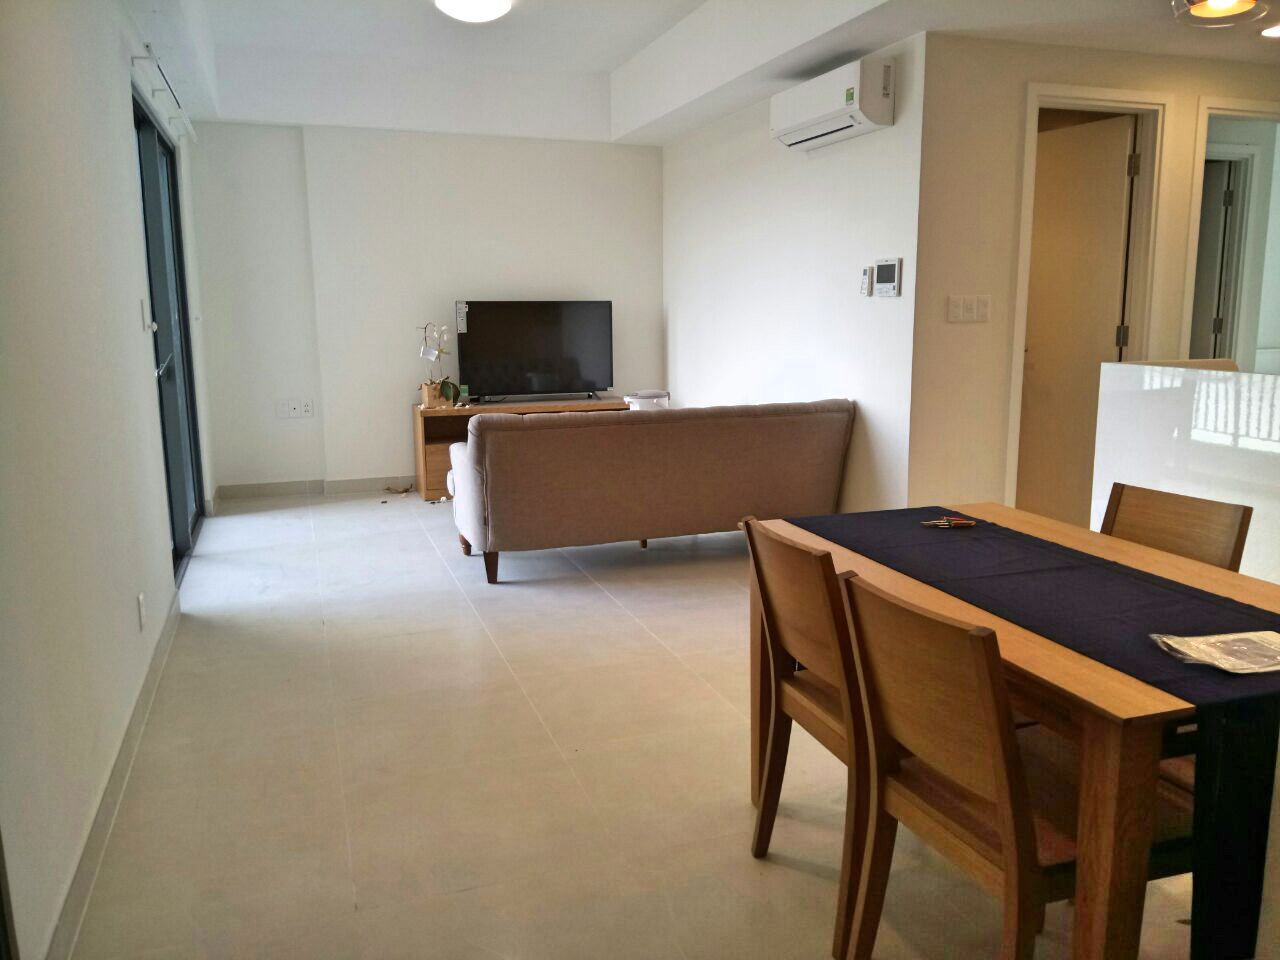 D214517 - Masteri Thao Dien Apartment For Rent - Best Price For Long-term - 2 Bedrooms